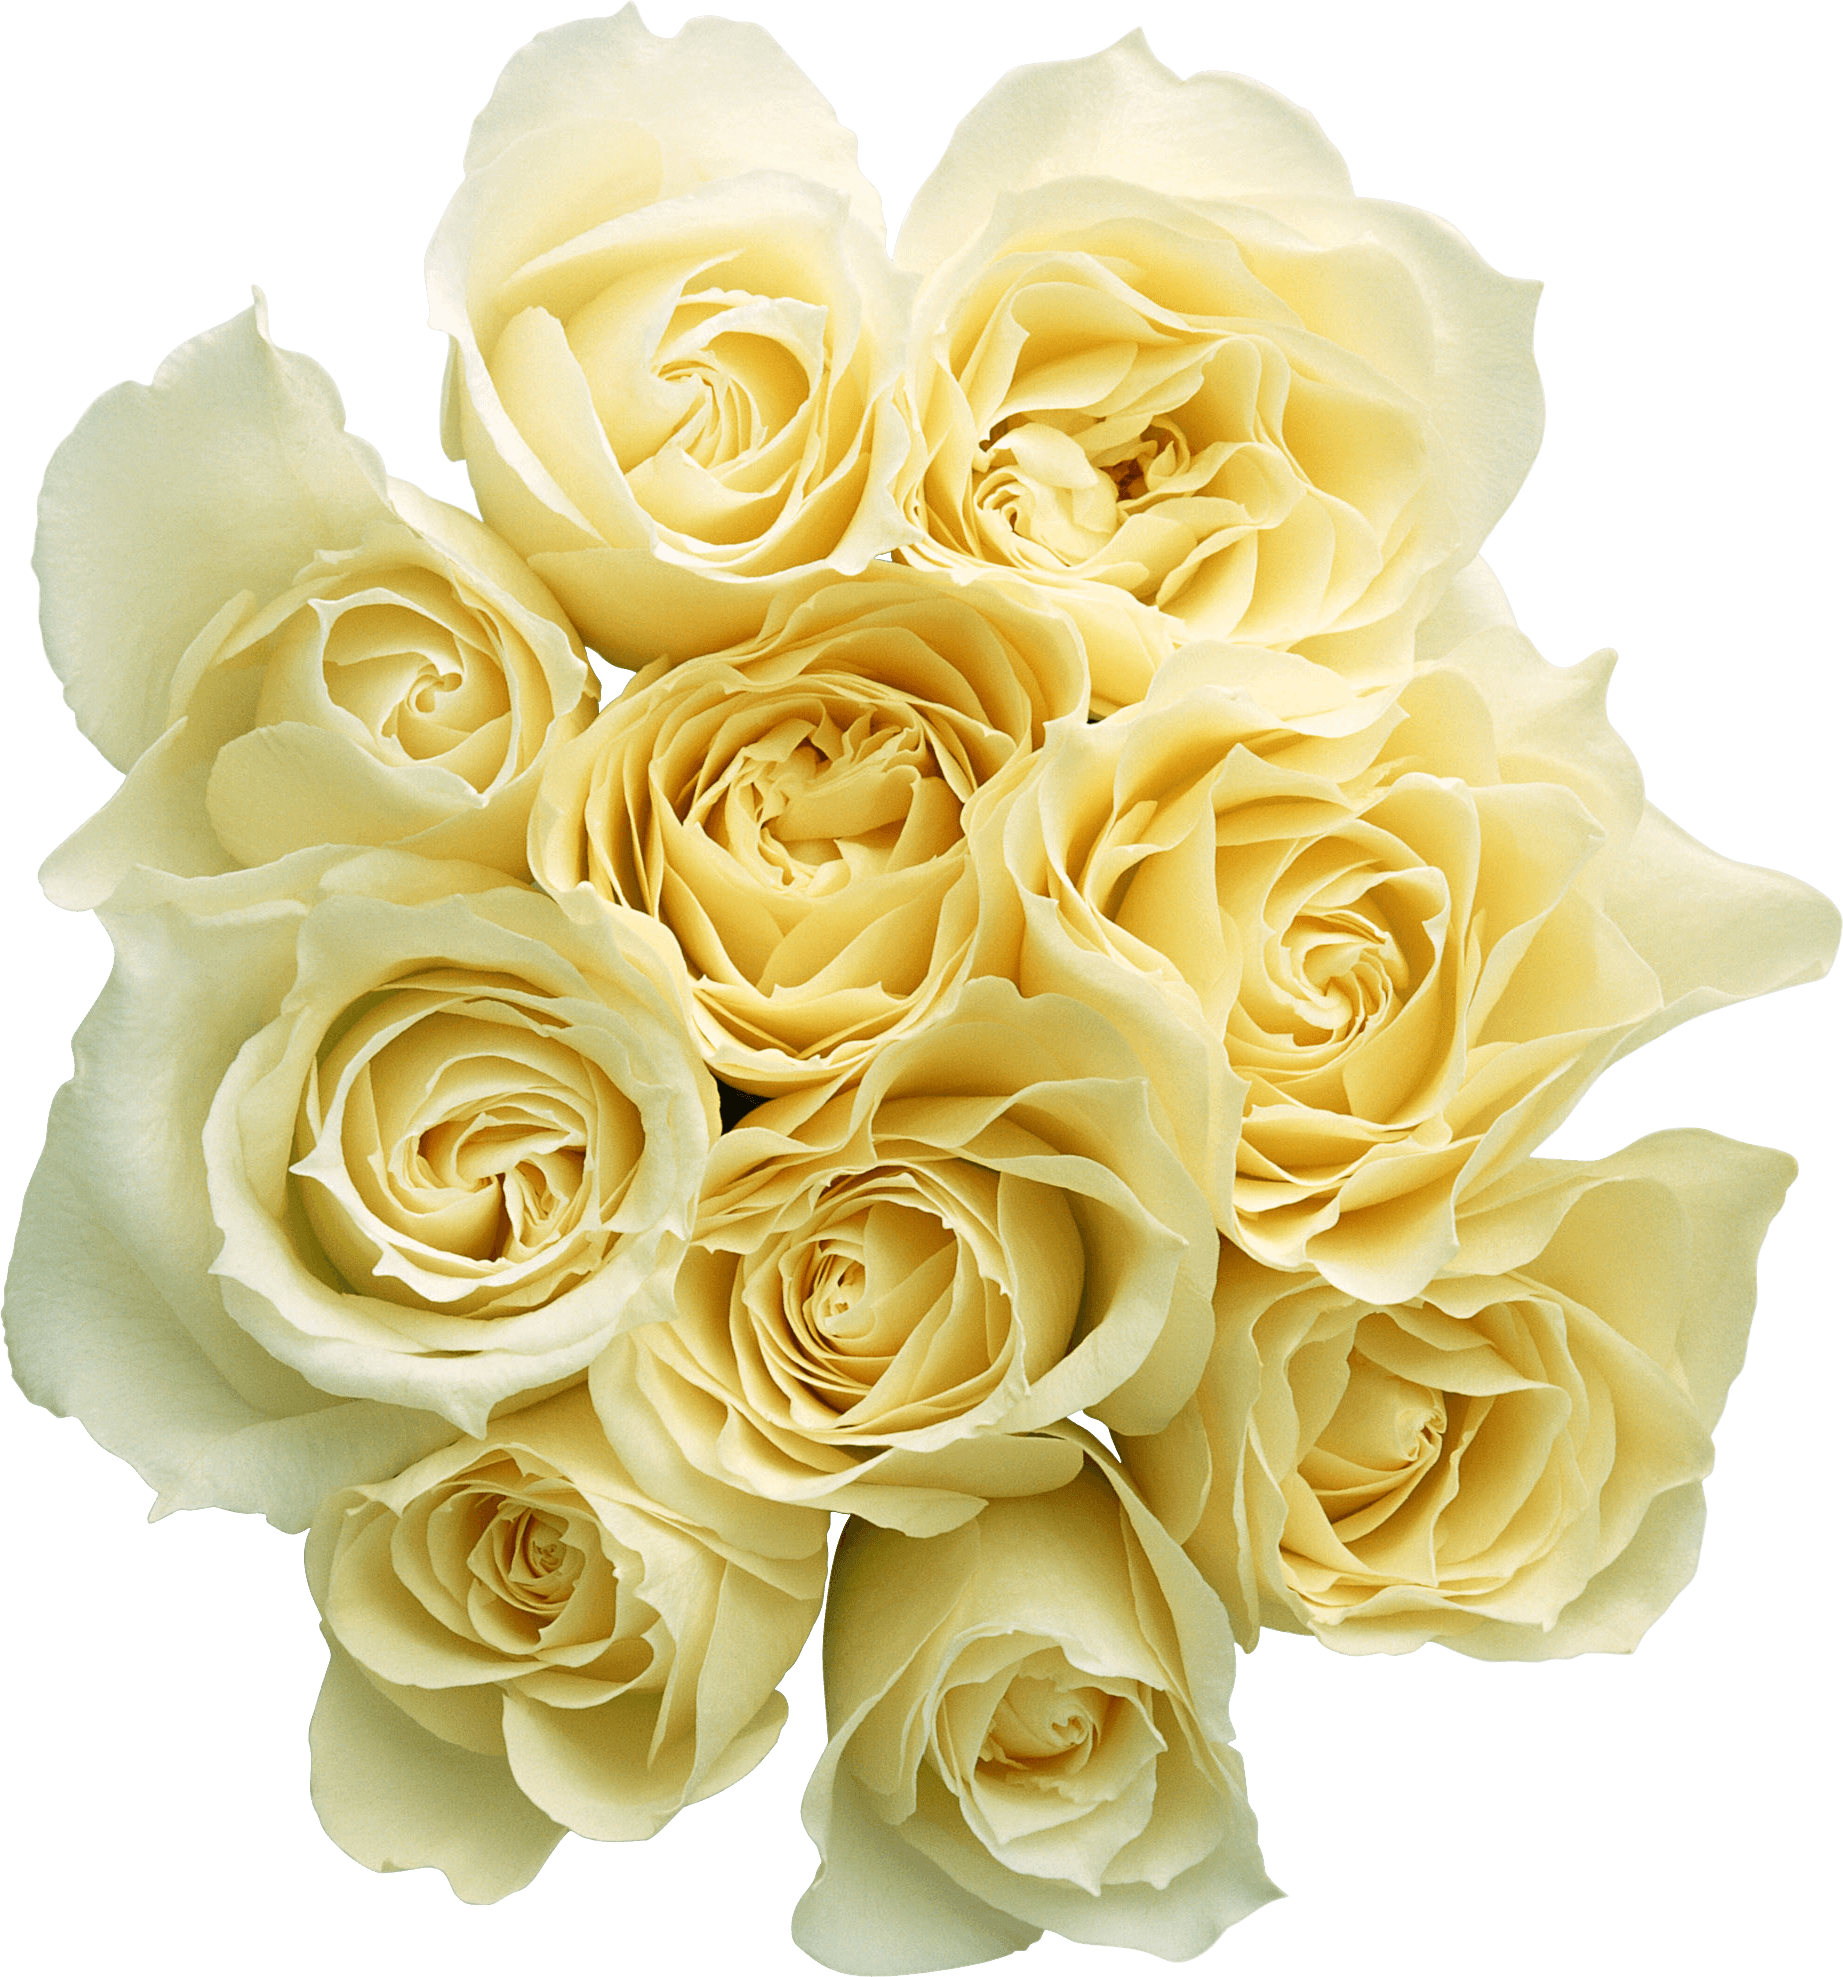 Top White Roses PNG Images - White Roses PNG